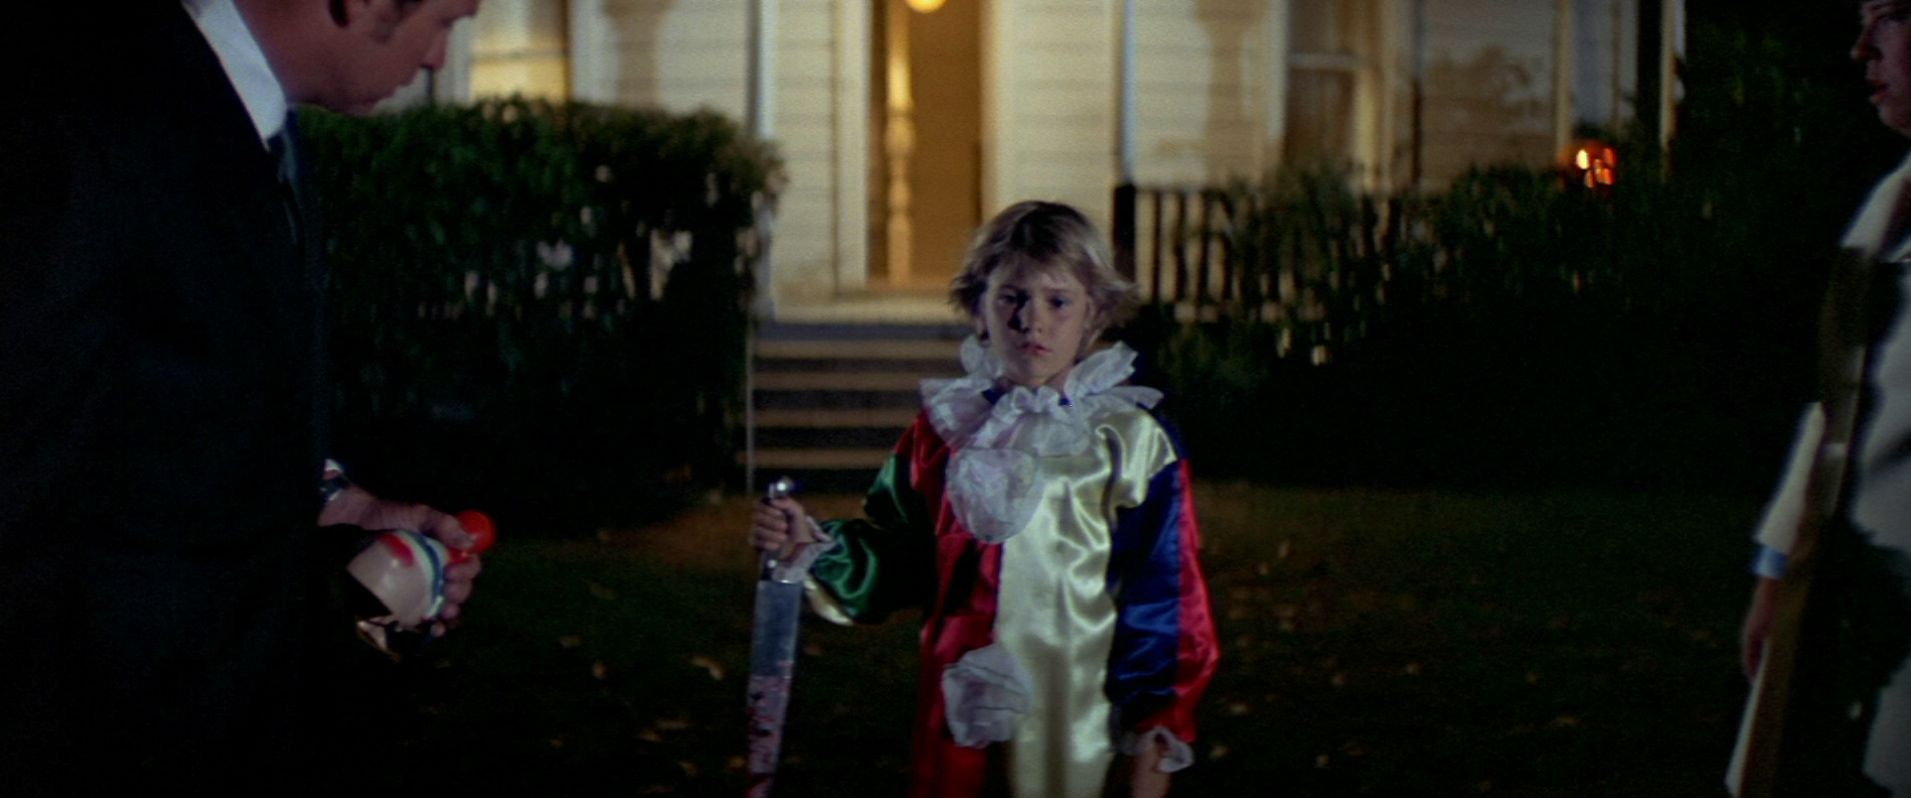 halloween michael myers - Halloween Movies For Young Kids